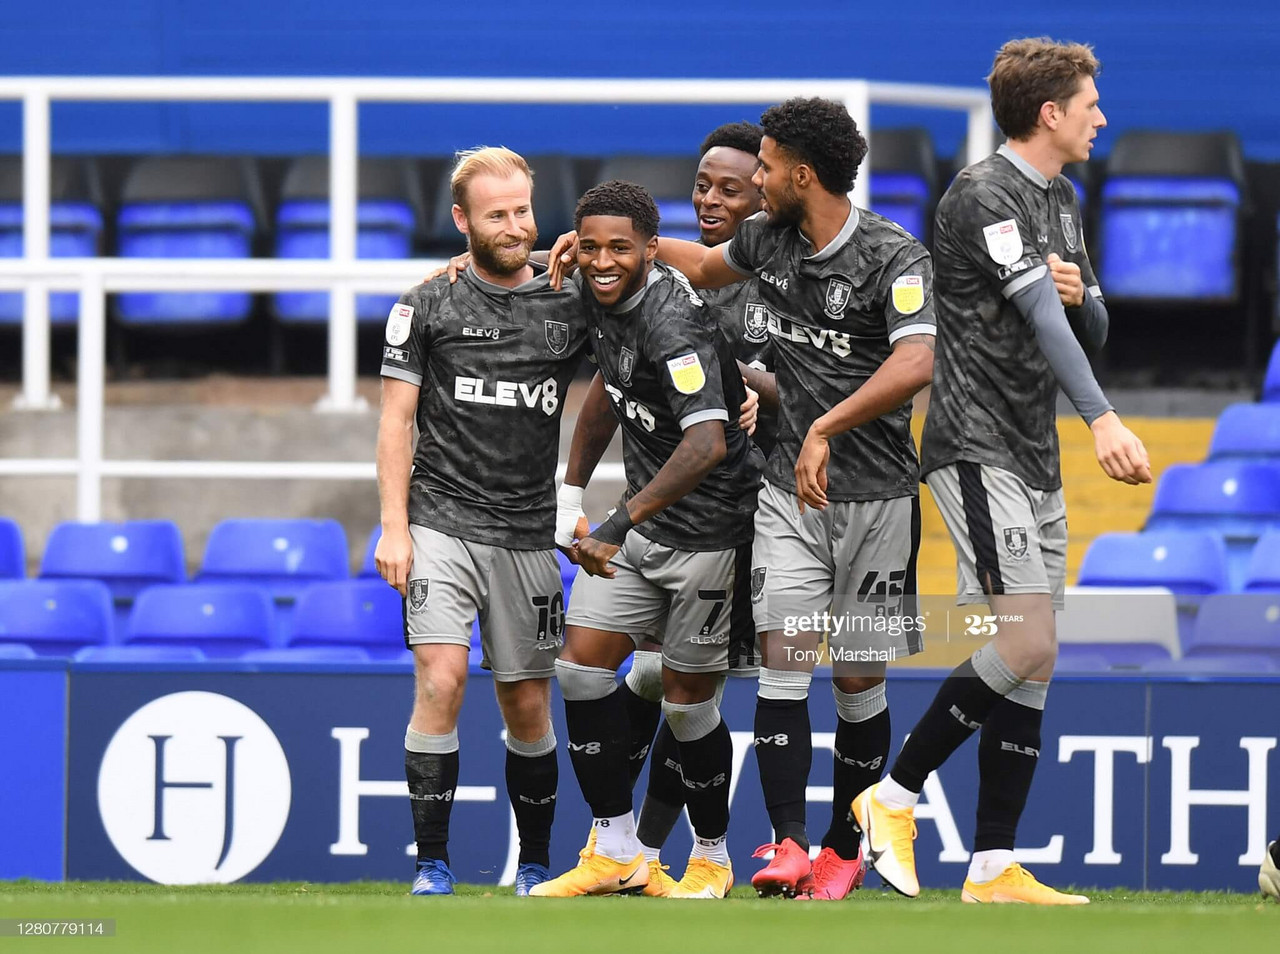 As it happened: Sheffield Wednesday 1-2 Brentford